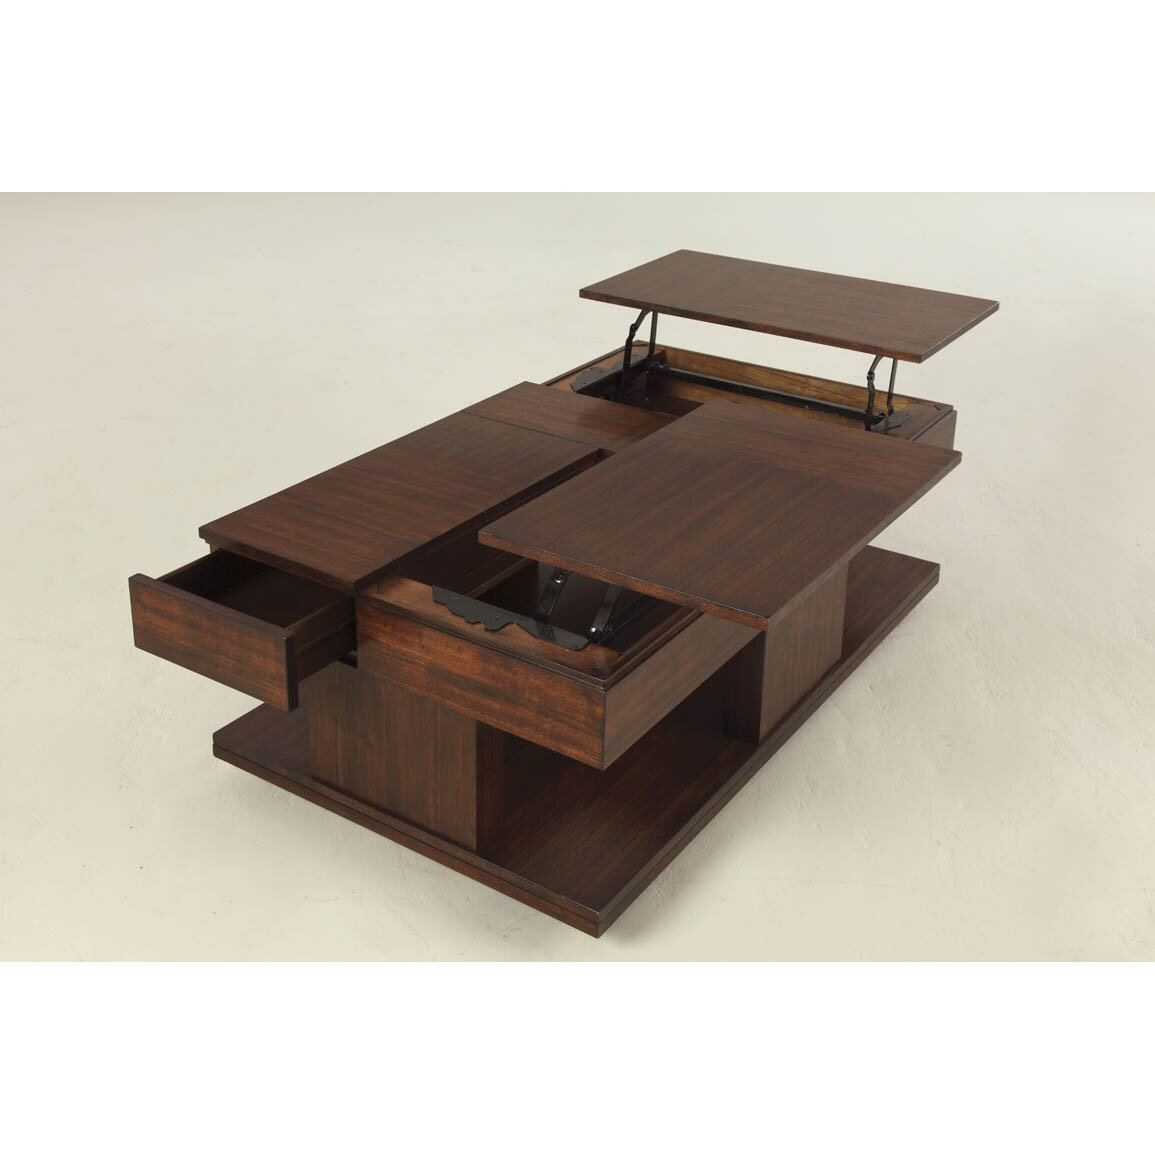 Dail Coffee Table with Double Lift-Top - Darby Home Co Dail Coffee Table With Double Lift-Top & Reviews